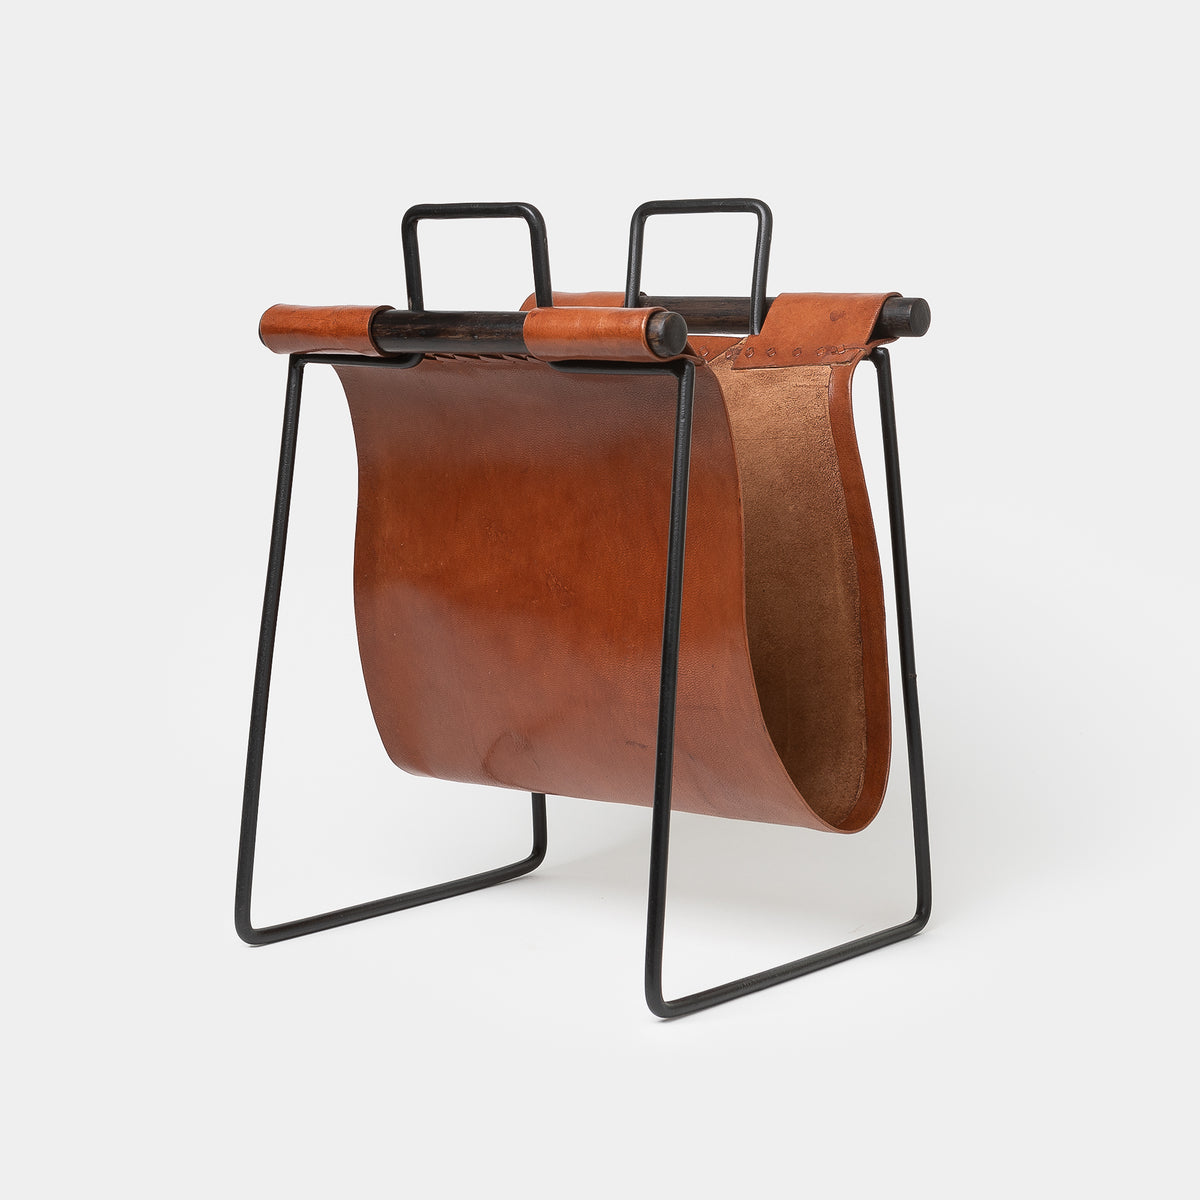 Load image into Gallery viewer, Leather & Iron Sling Magazine Rack